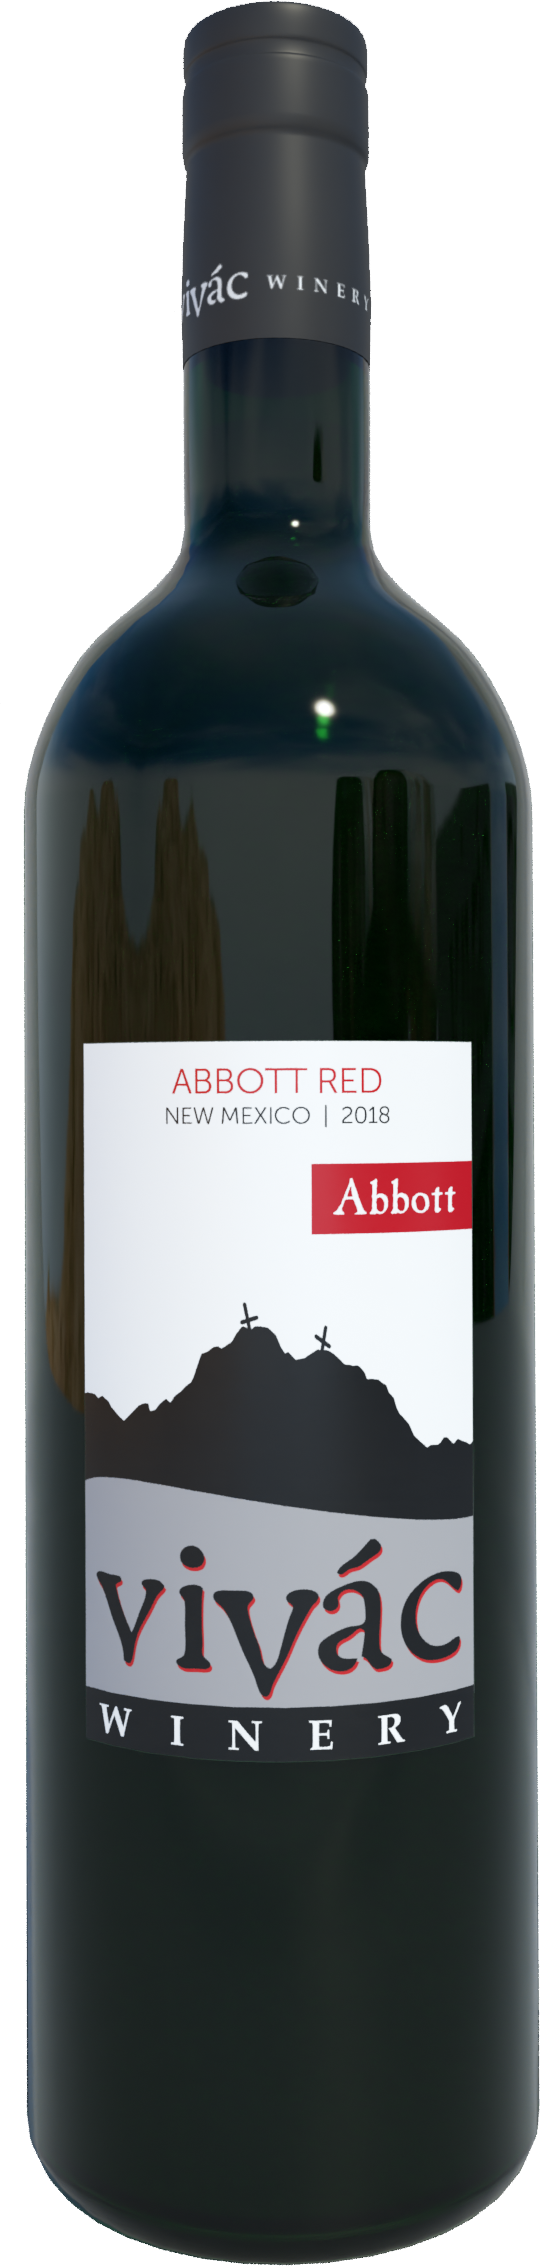 2018 Abbott Red